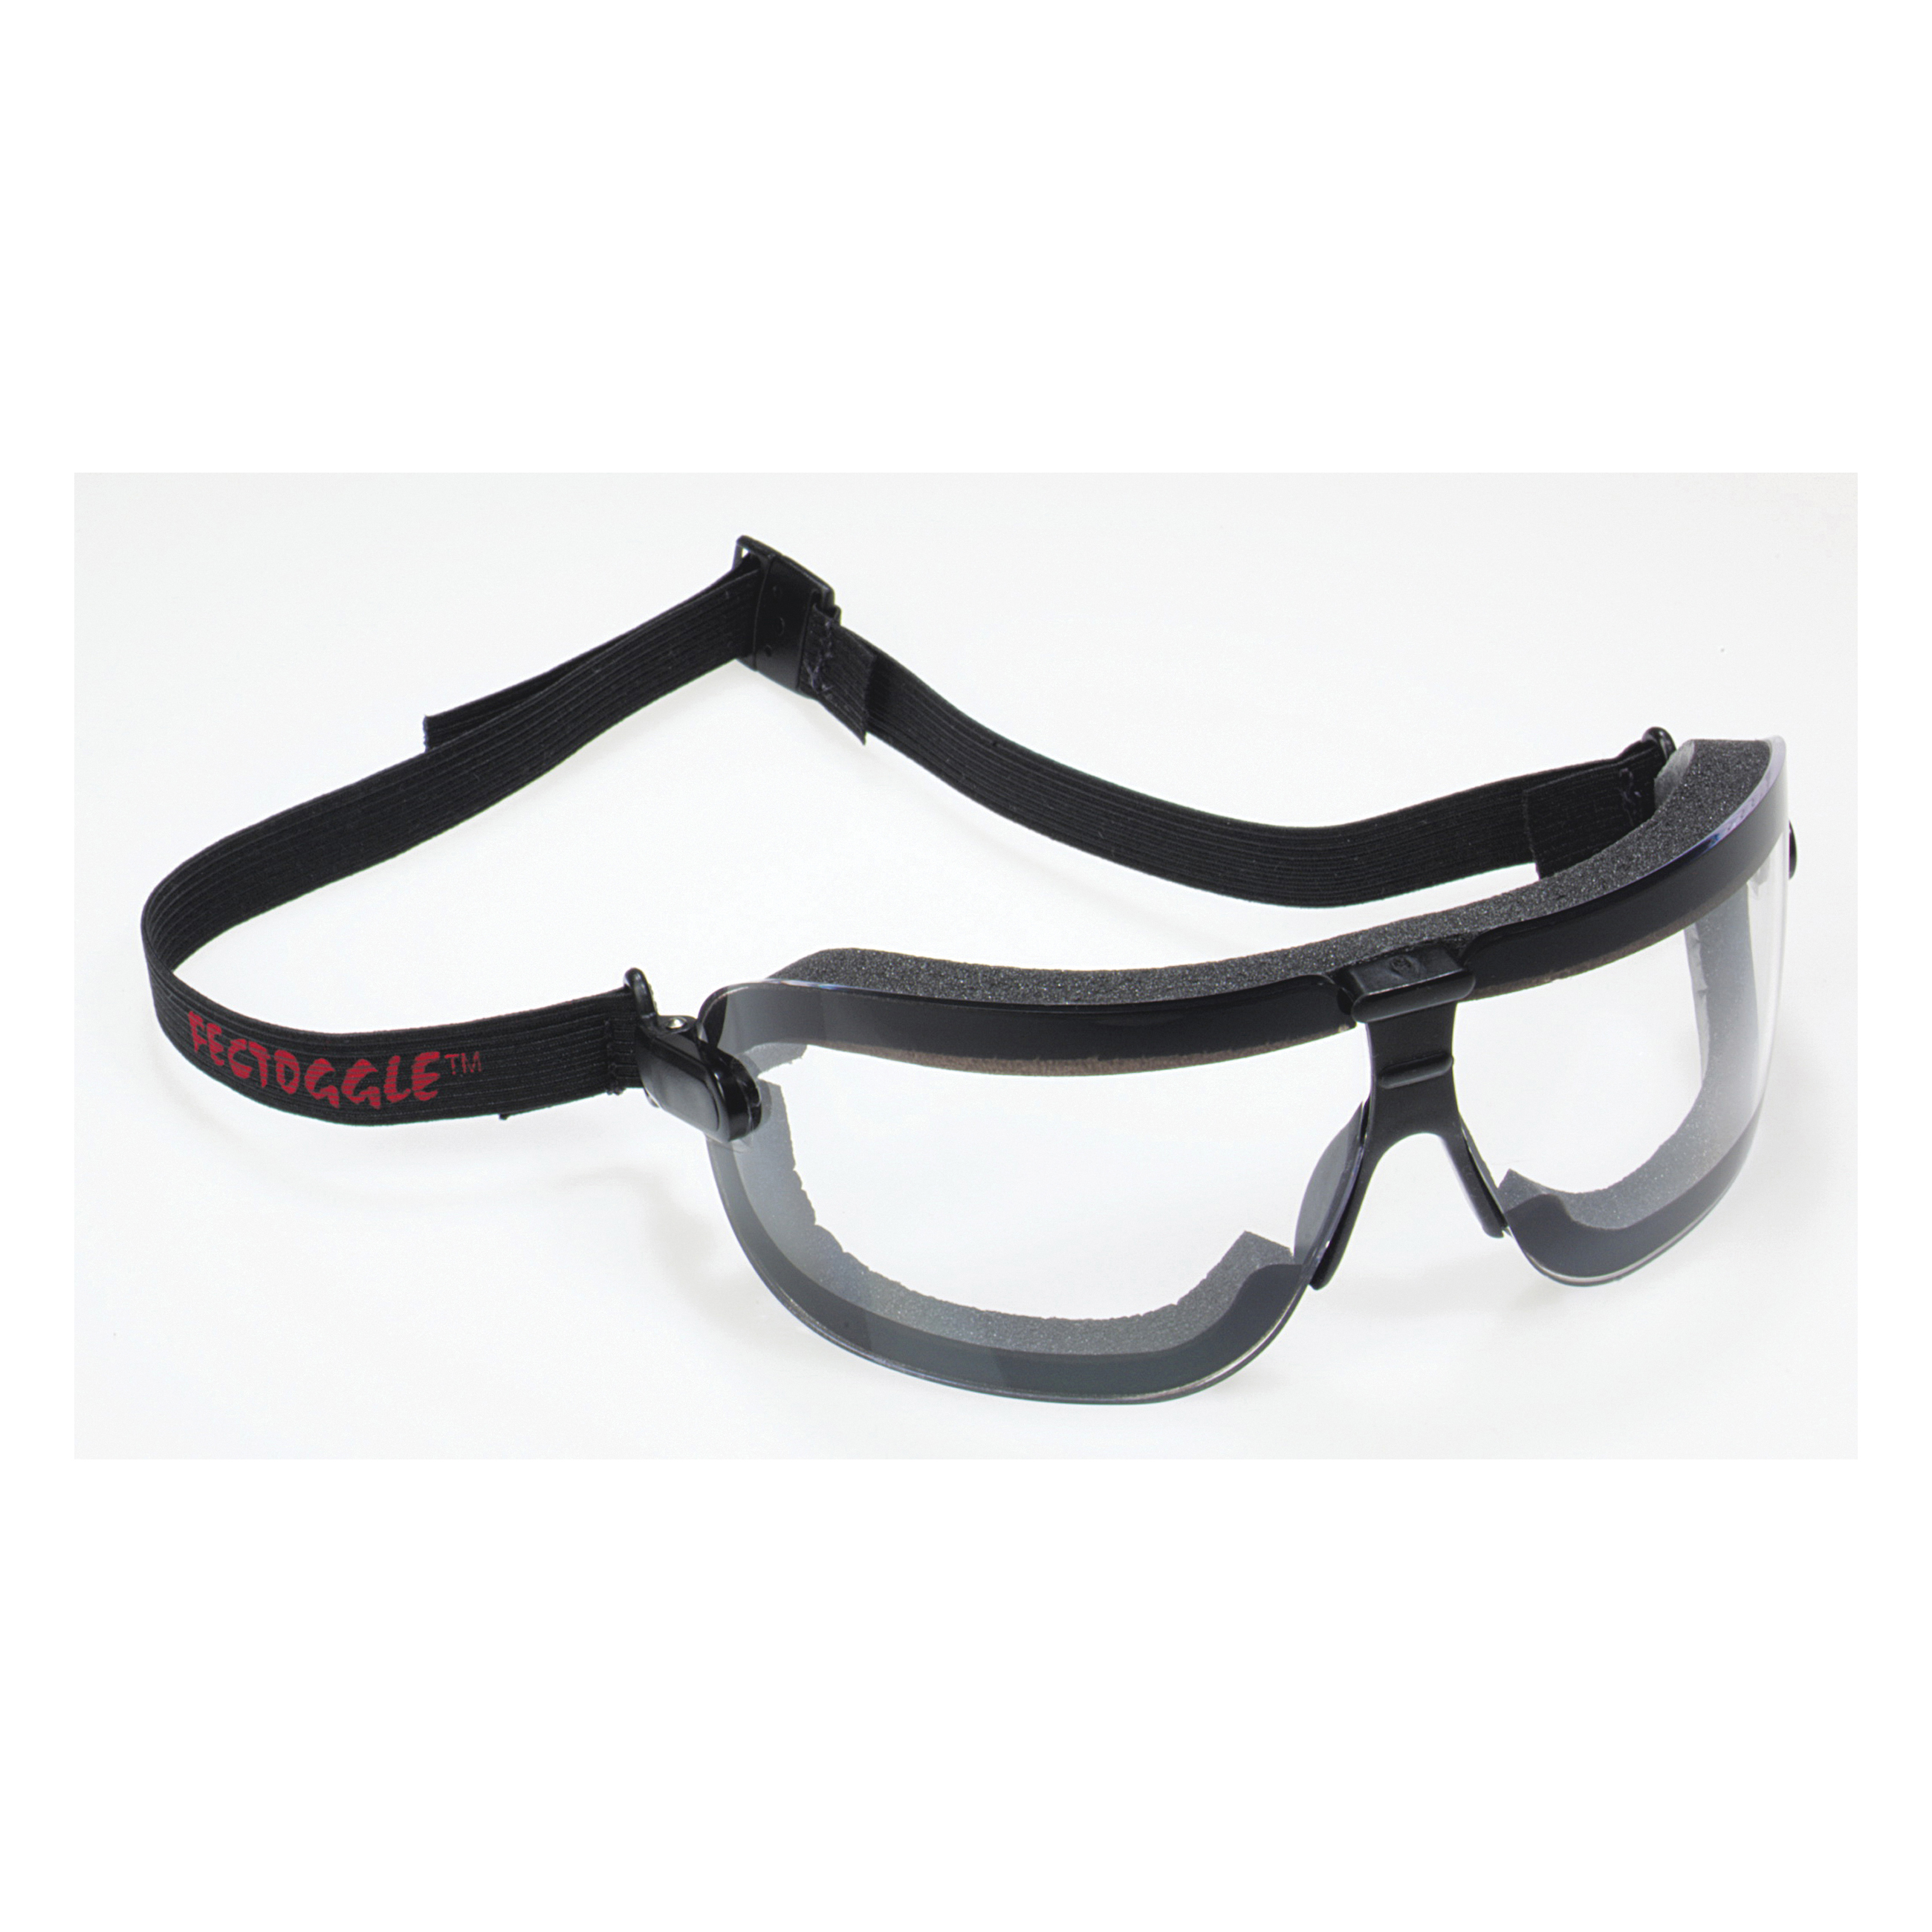 3M™ Fectoggles™ 078371-62324 16412-00000-10 Lightweight Safety Goggles, Anti-Fog/Anti-Scratch Clear Polycarbonate Lens, 99.9% % UV Protection, Elastic Strap, Specifications Met: ANSI Z87.1-2015, CSA Z94.3